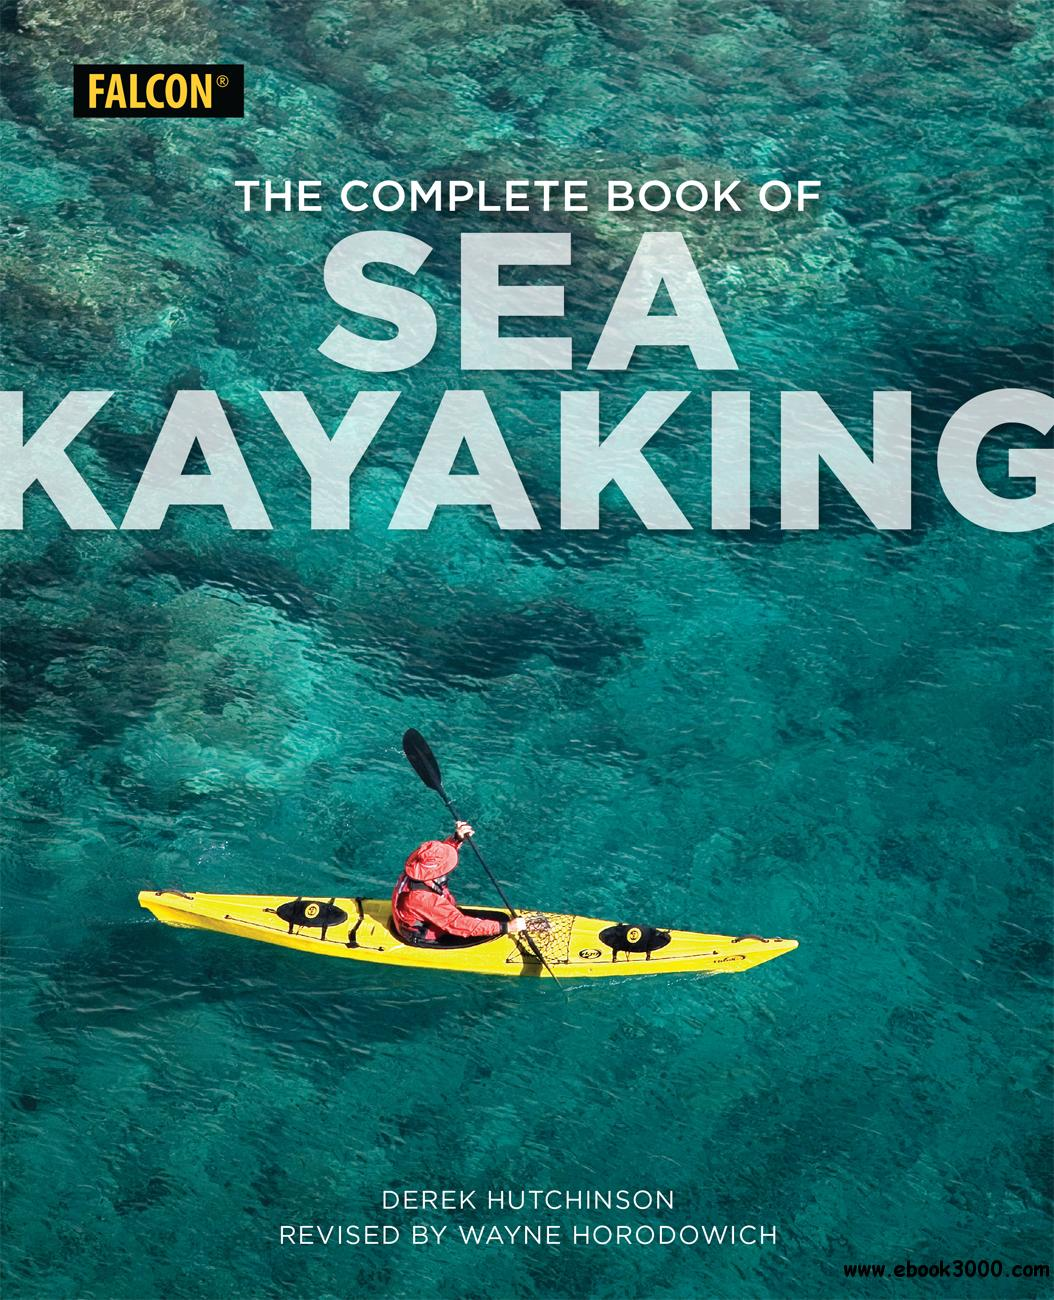 The Complete Book of Sea Kayaking, 6th Edition